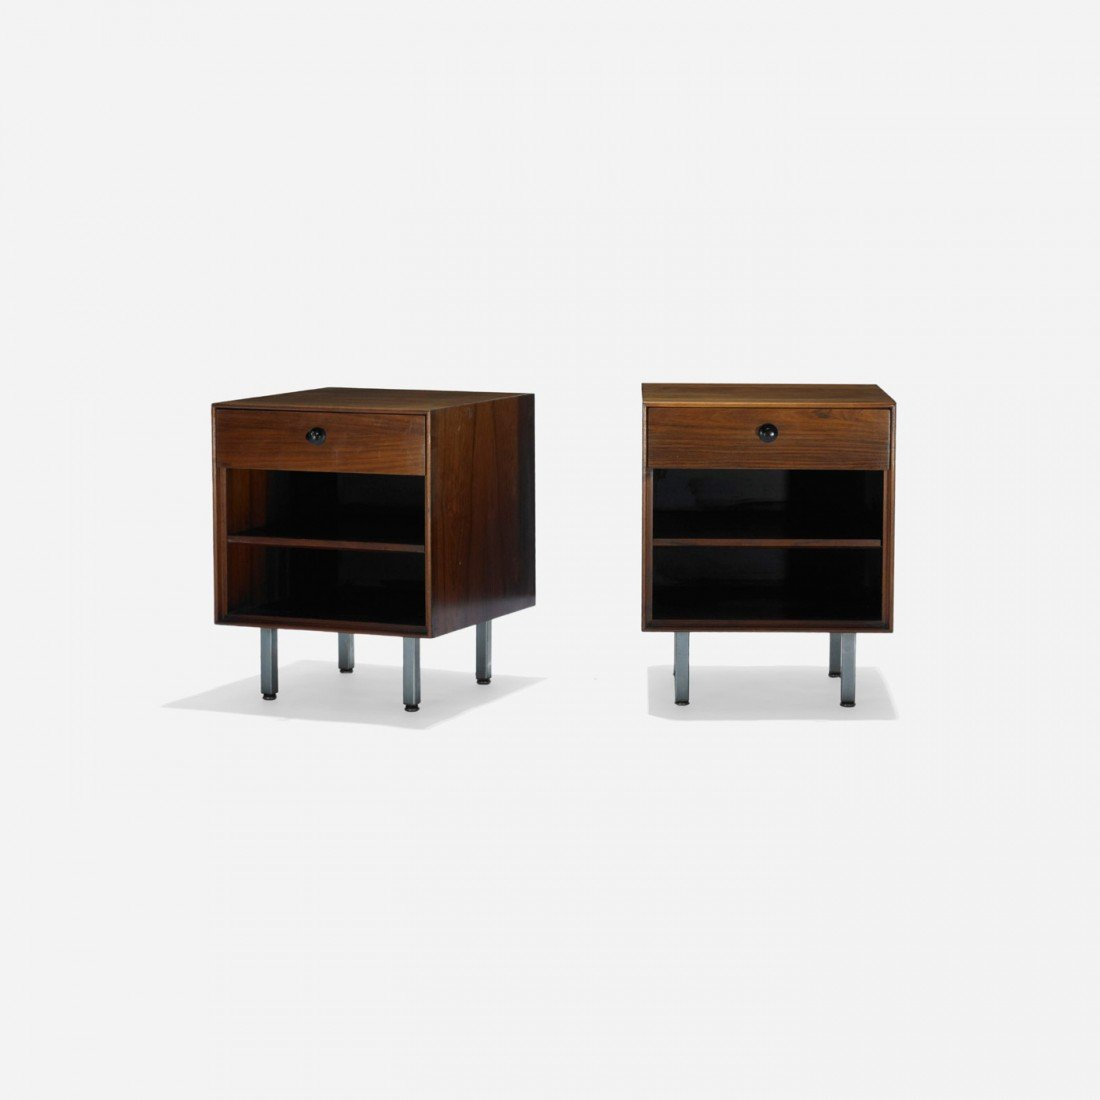 157: Nelson & Associates Thin Edge nightstands, pair